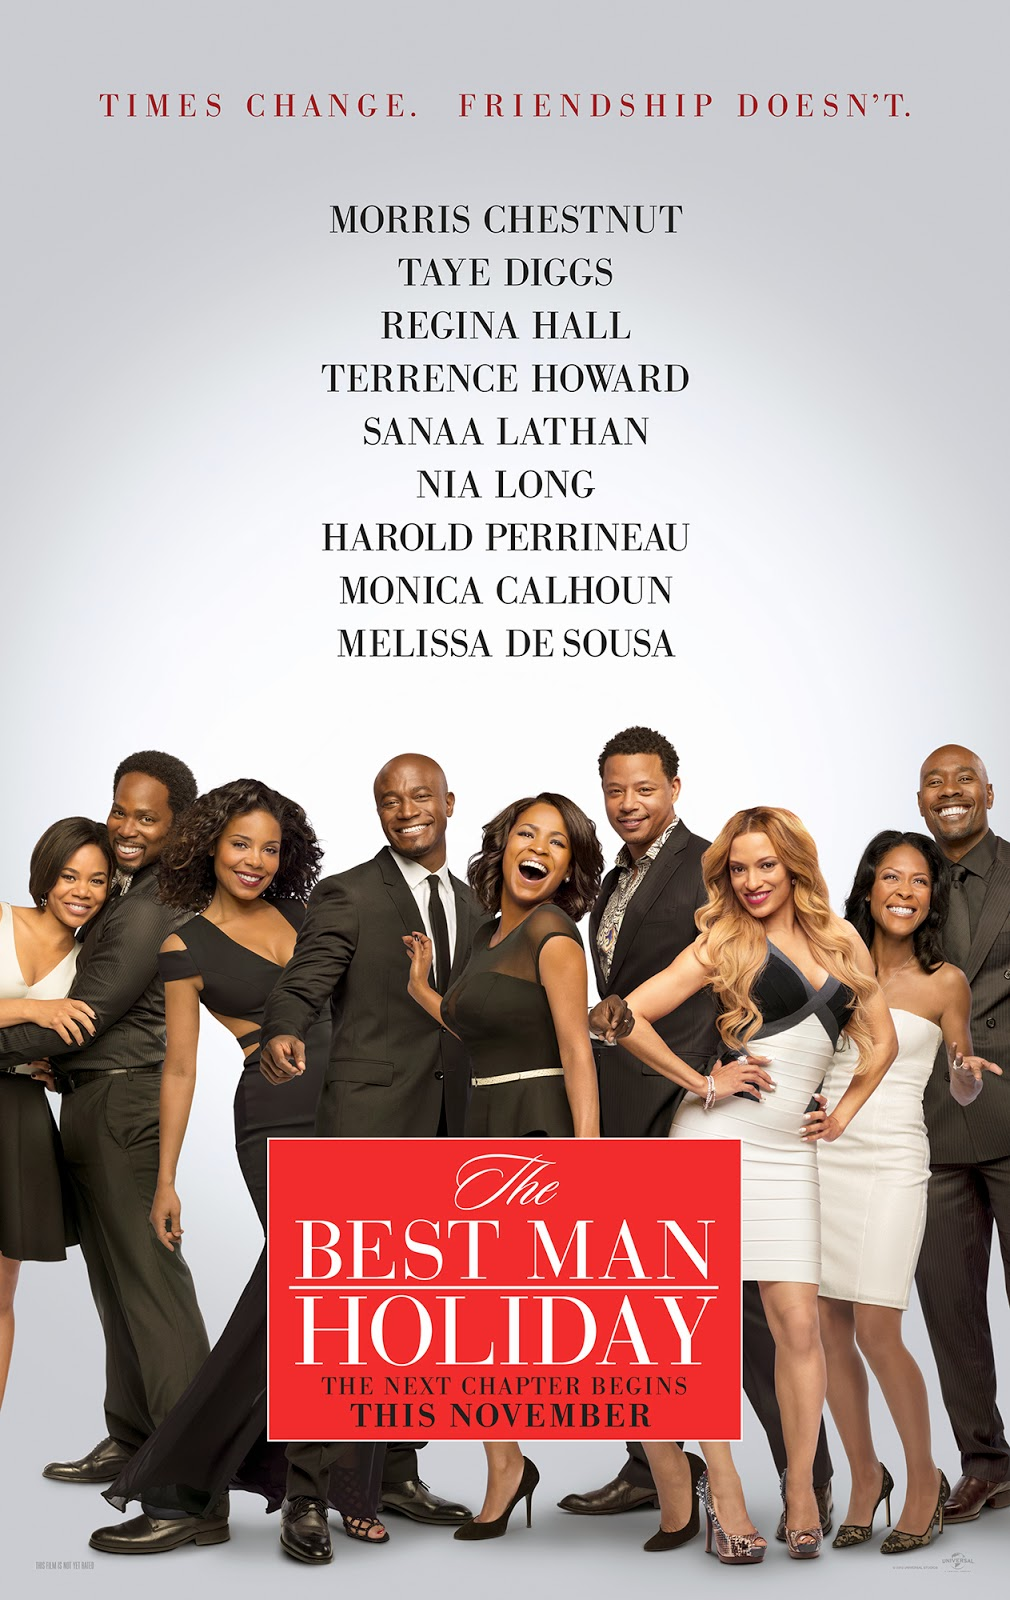 Download - The Best Man Holiday (2013)